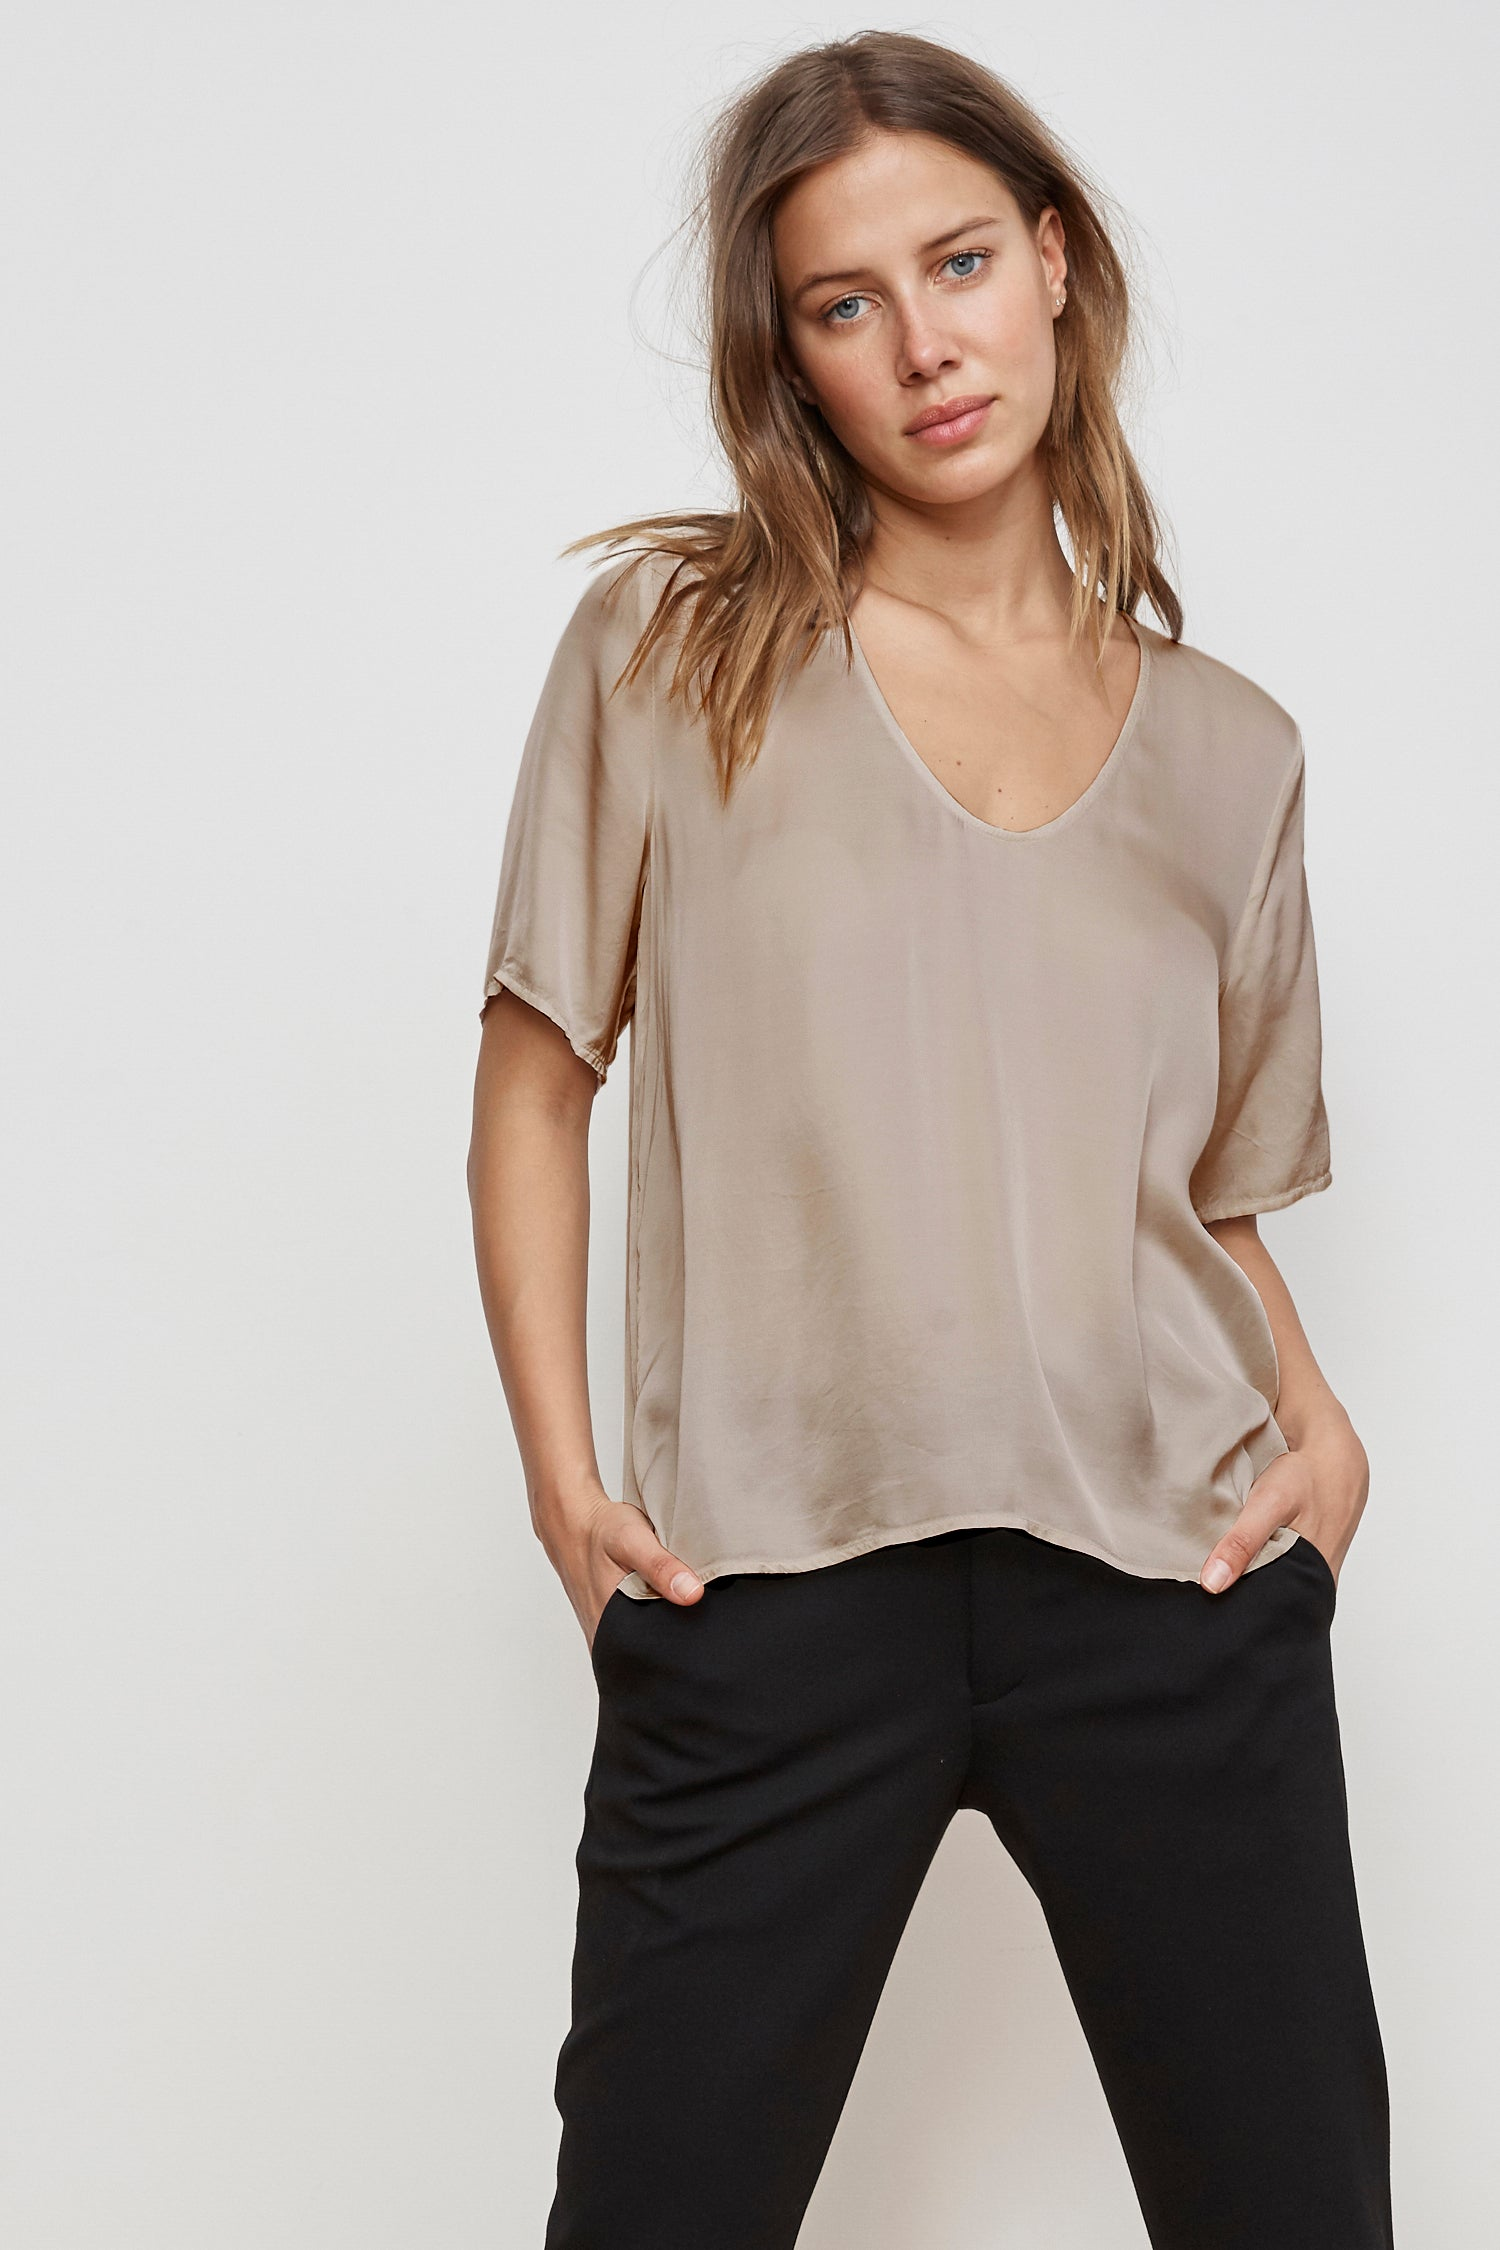 TITA SATIN VISCOSE SCOOP NECK TOP IN BLUSH